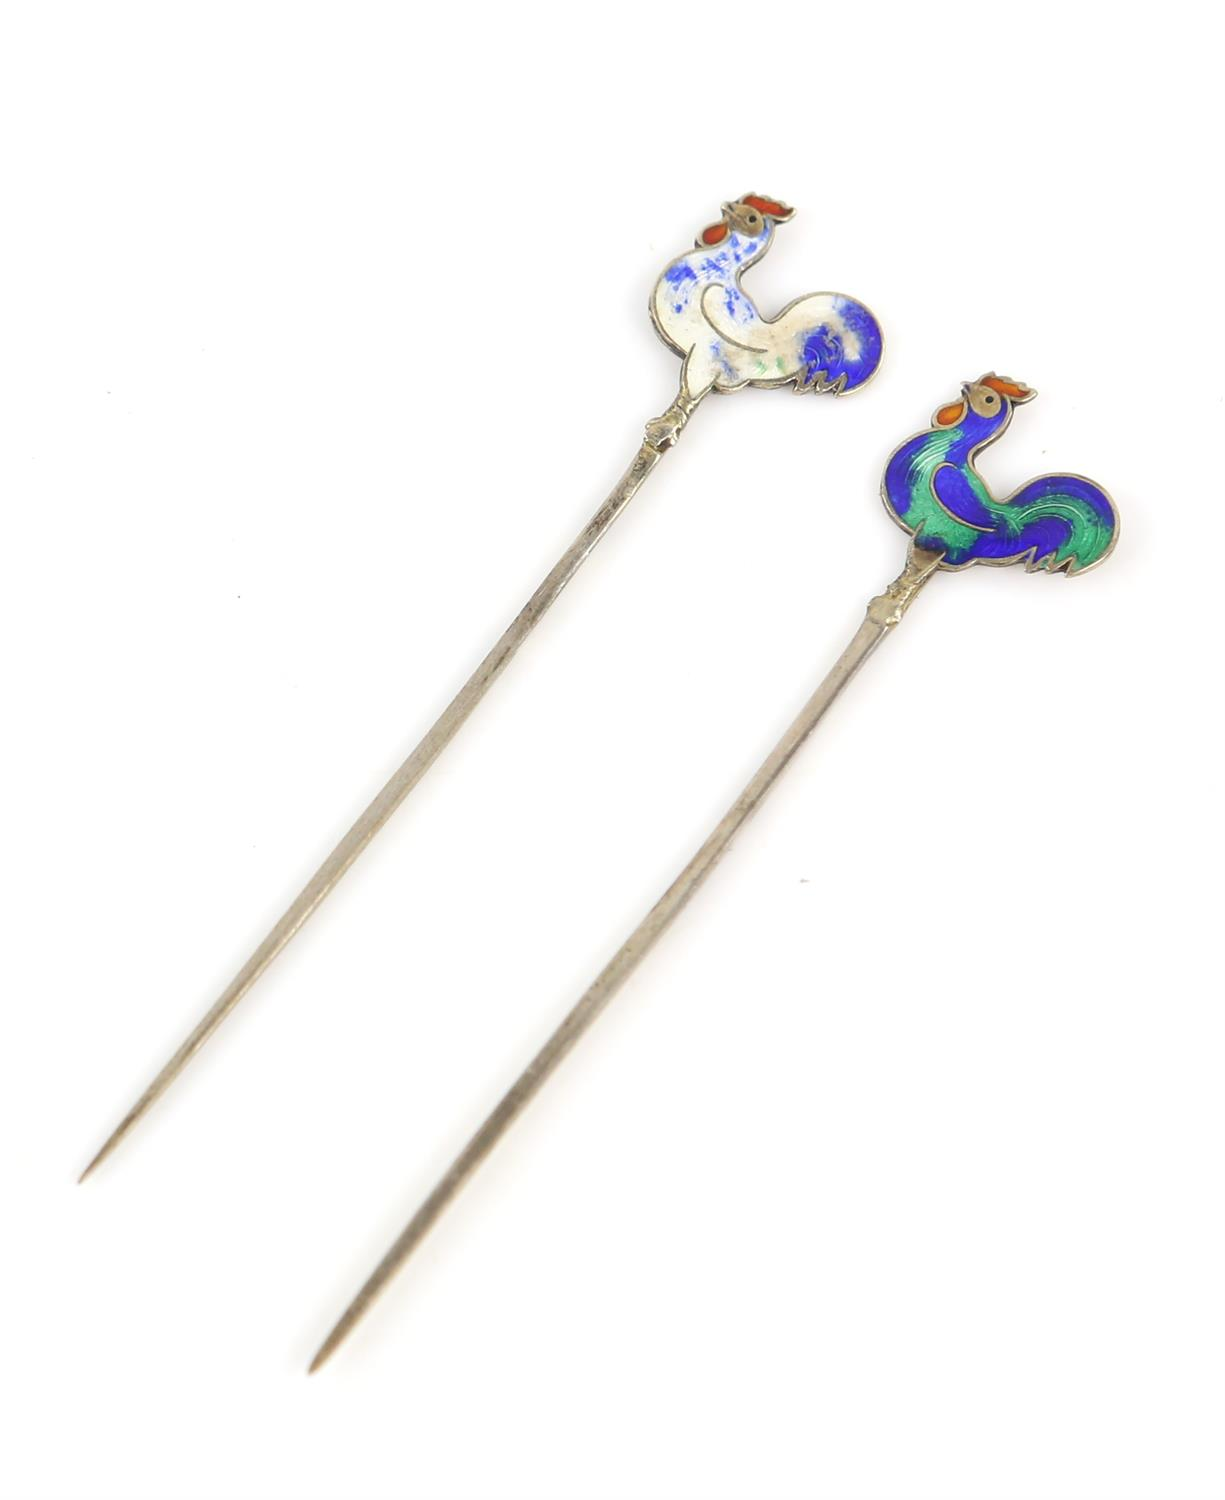 Cased set of silver and enamel cockerel cocktail sticks, each bird with individual enamel - Image 3 of 6